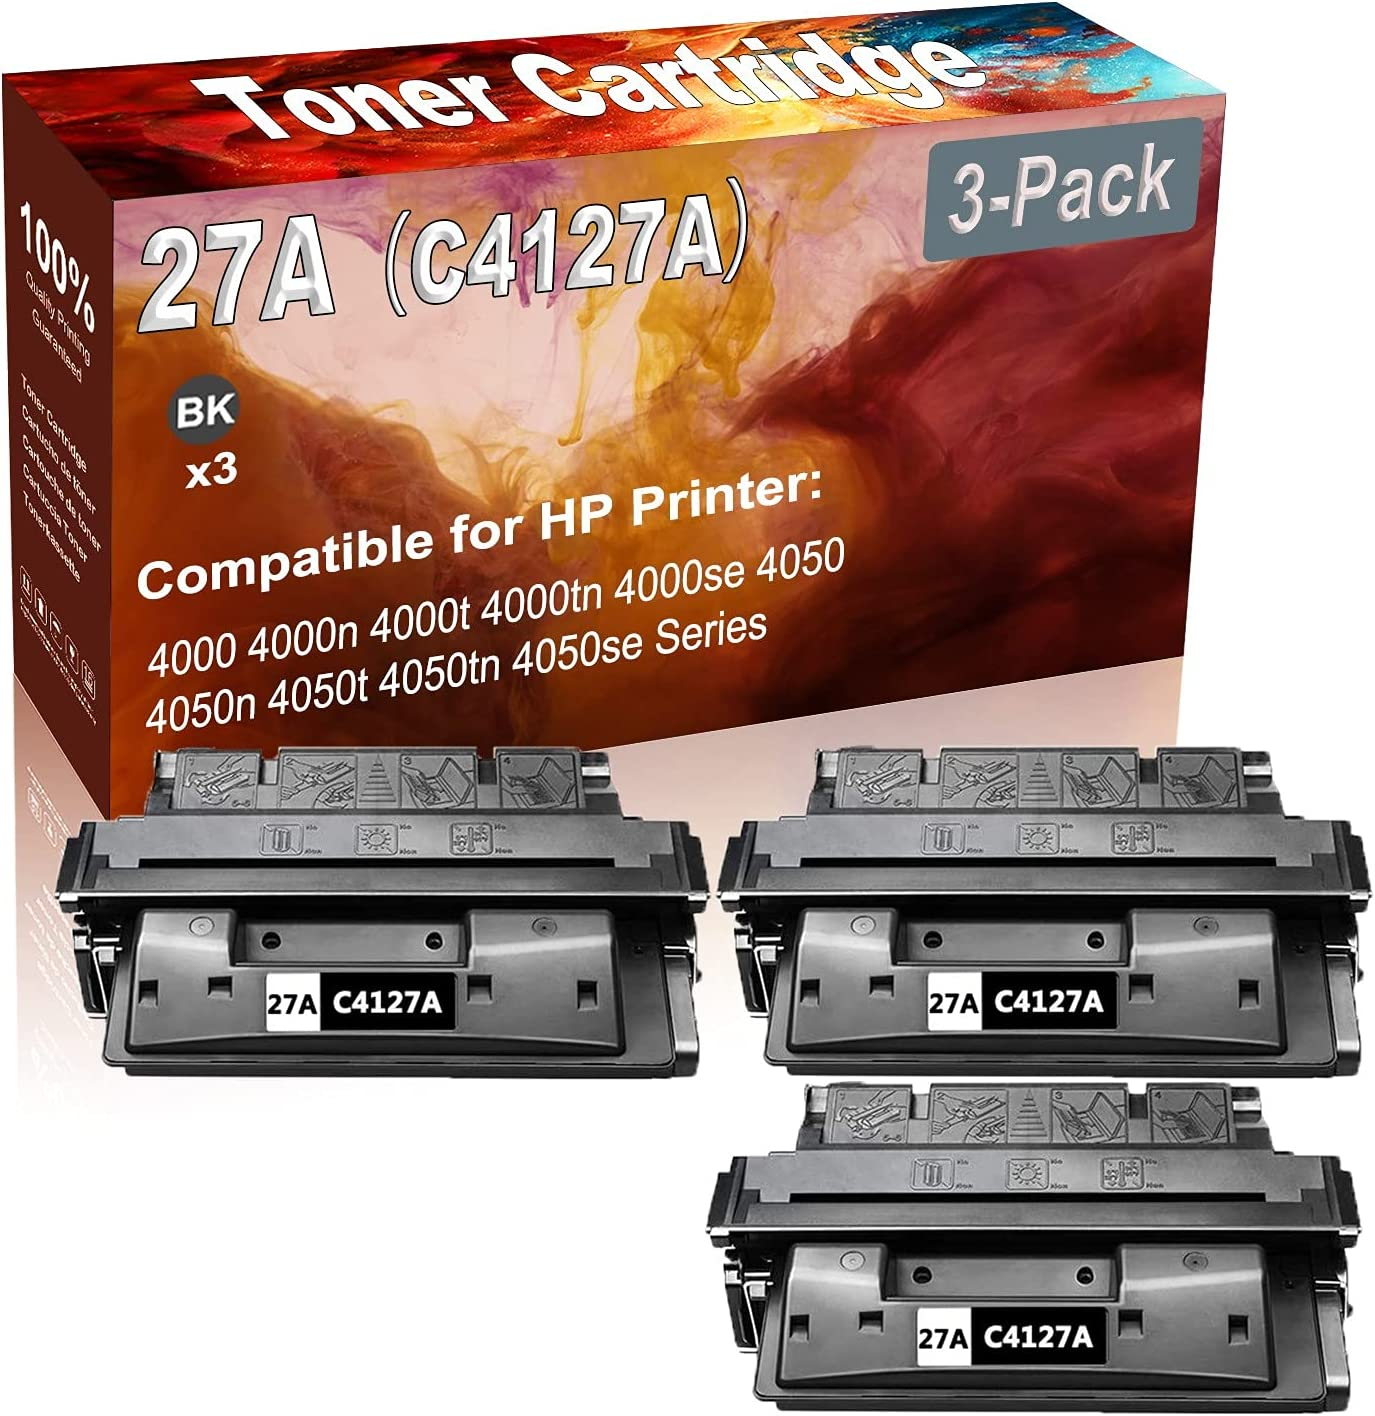 3-Pack (Black) Compatible 27A (C4127A) Printer Toner Cartridge (High Capacity) fit for HP 4000 4000n 4000t Printer